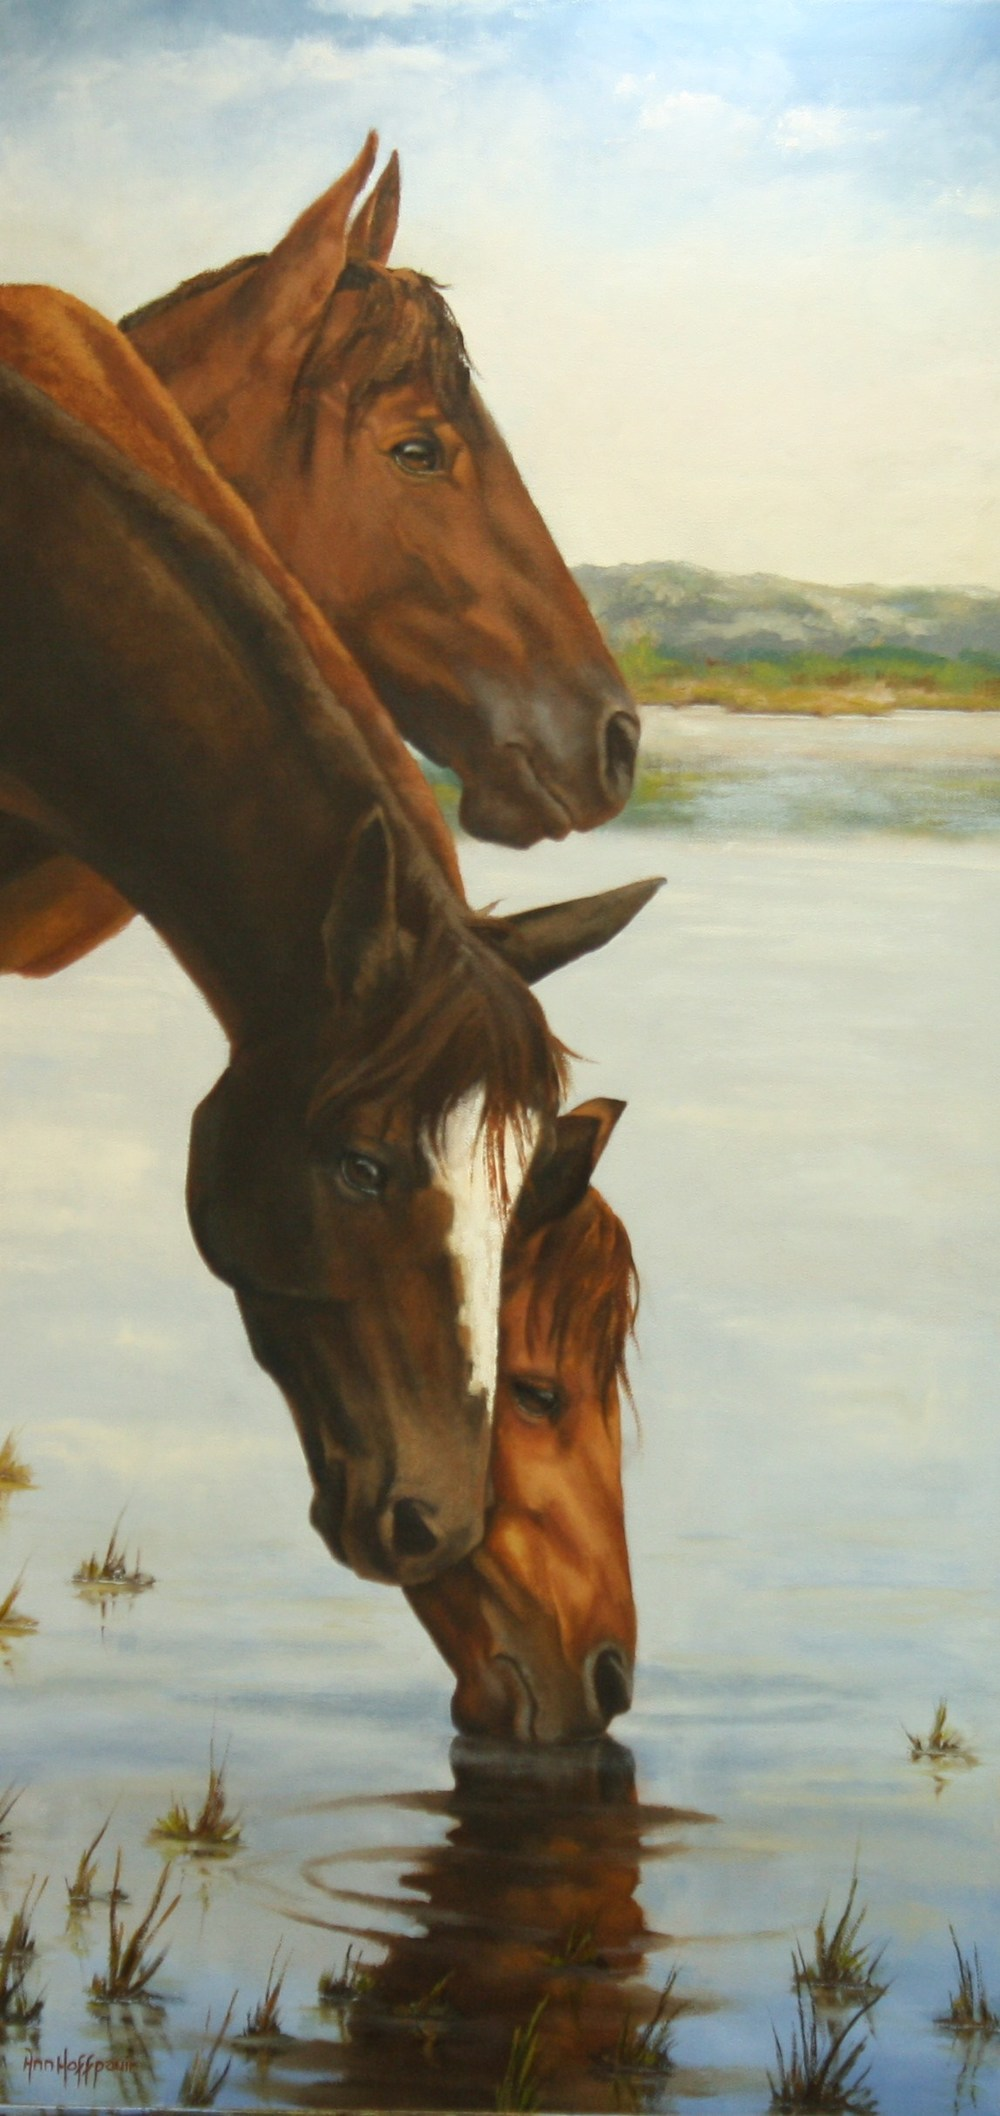 Watercolor artists in texas - Visit Davis Co Gallery To See The Featured Art For The Upcoming Rites Of Spring Invitational Show